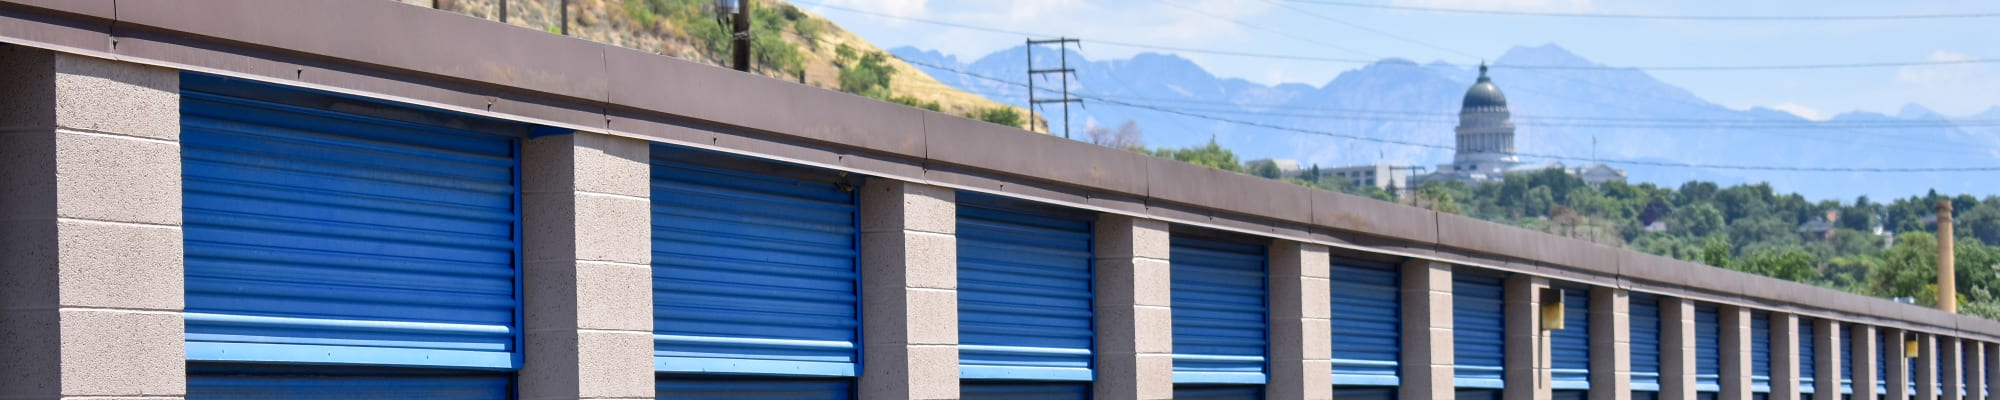 Features at STOR-N-LOCK Self Storage in Salt Lake City, Utah